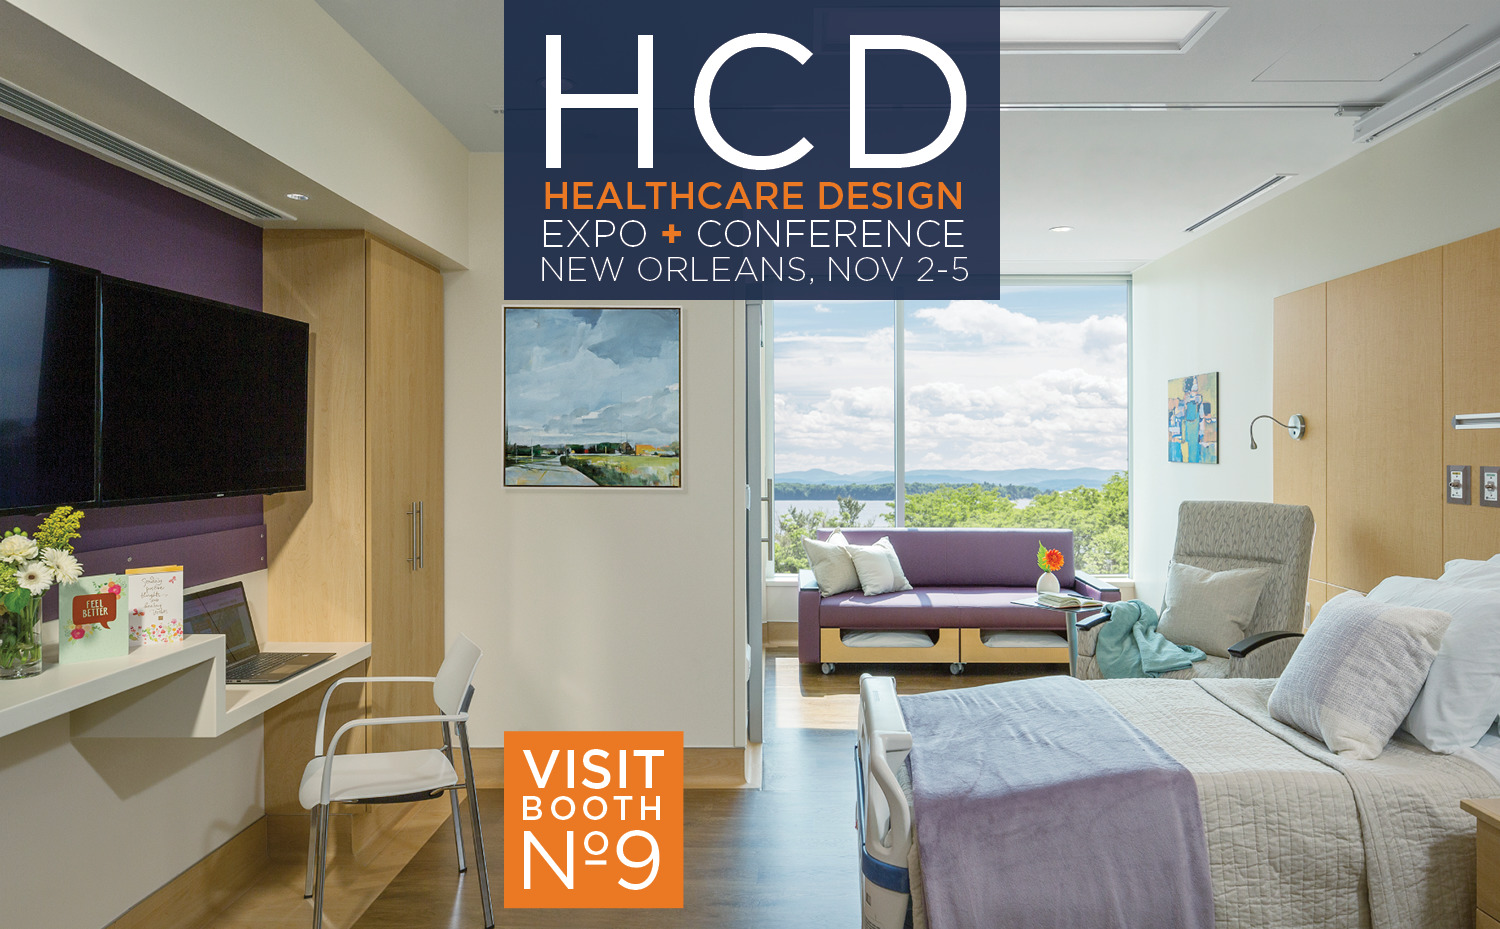 Hospital patient room with bed, couch, chair, exam desk and television against the HCD logo